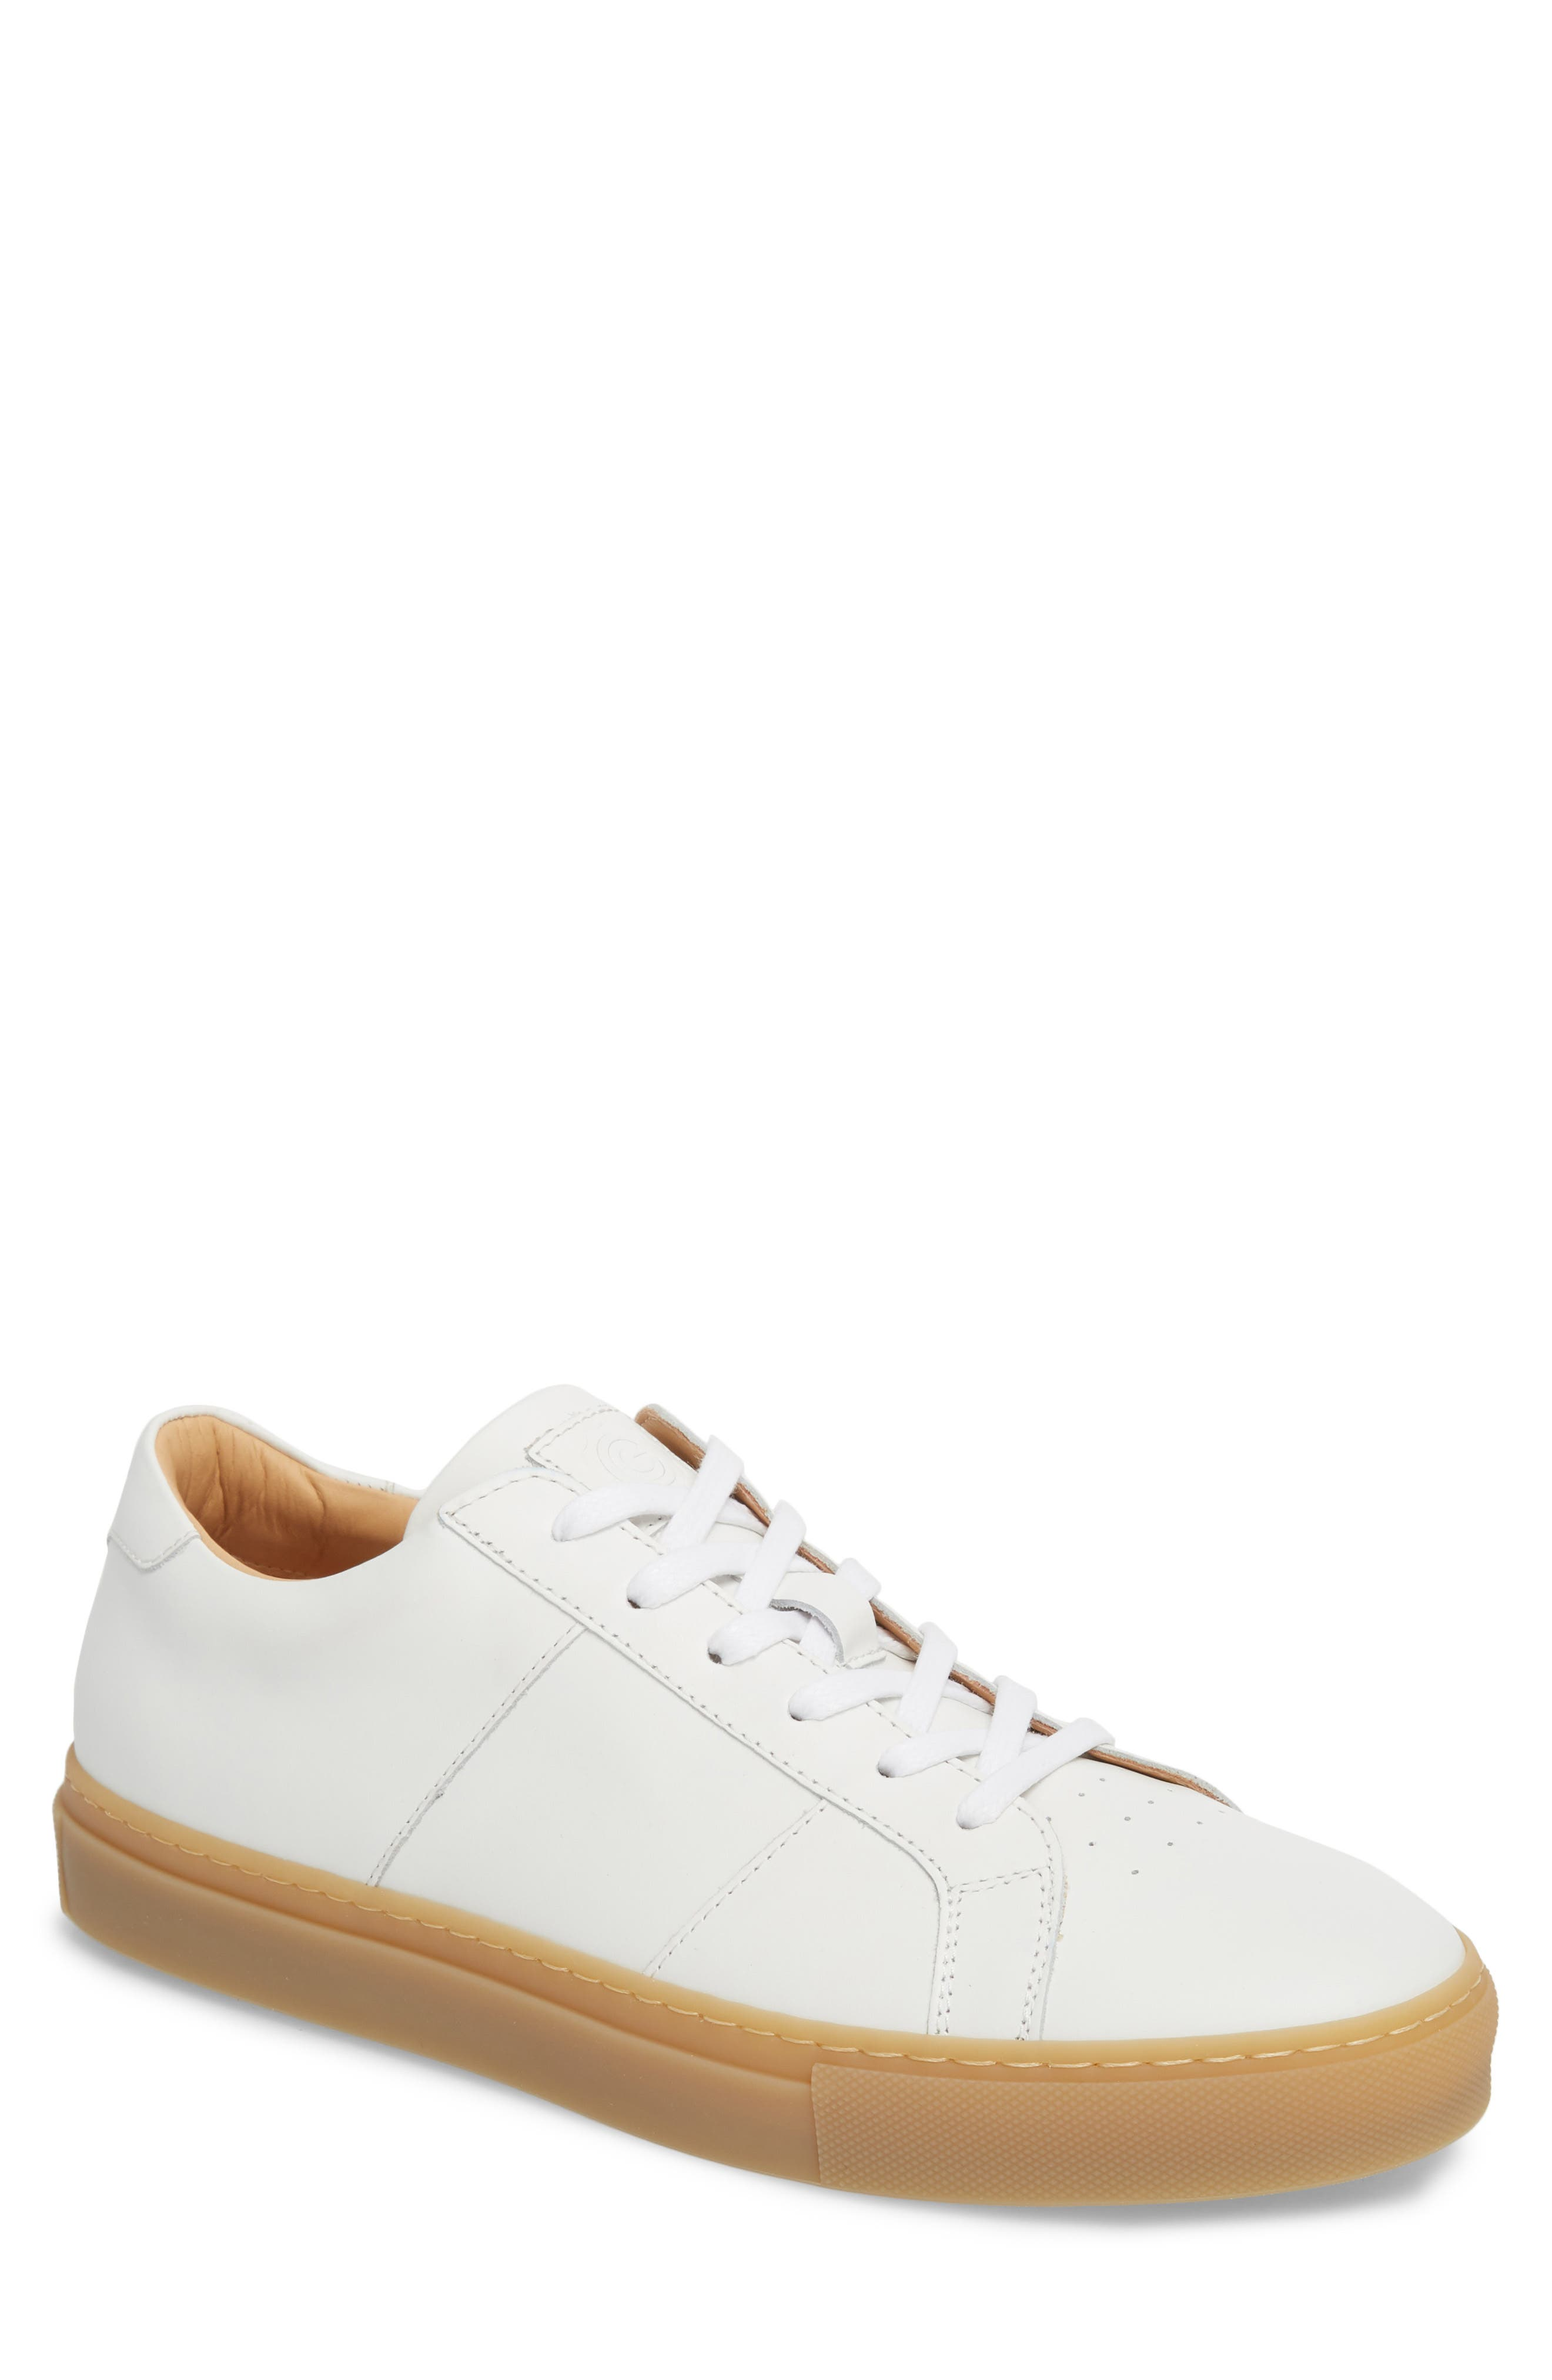 Royale Reverse Sneaker,                             Main thumbnail 1, color,                             WHITE/ GUM